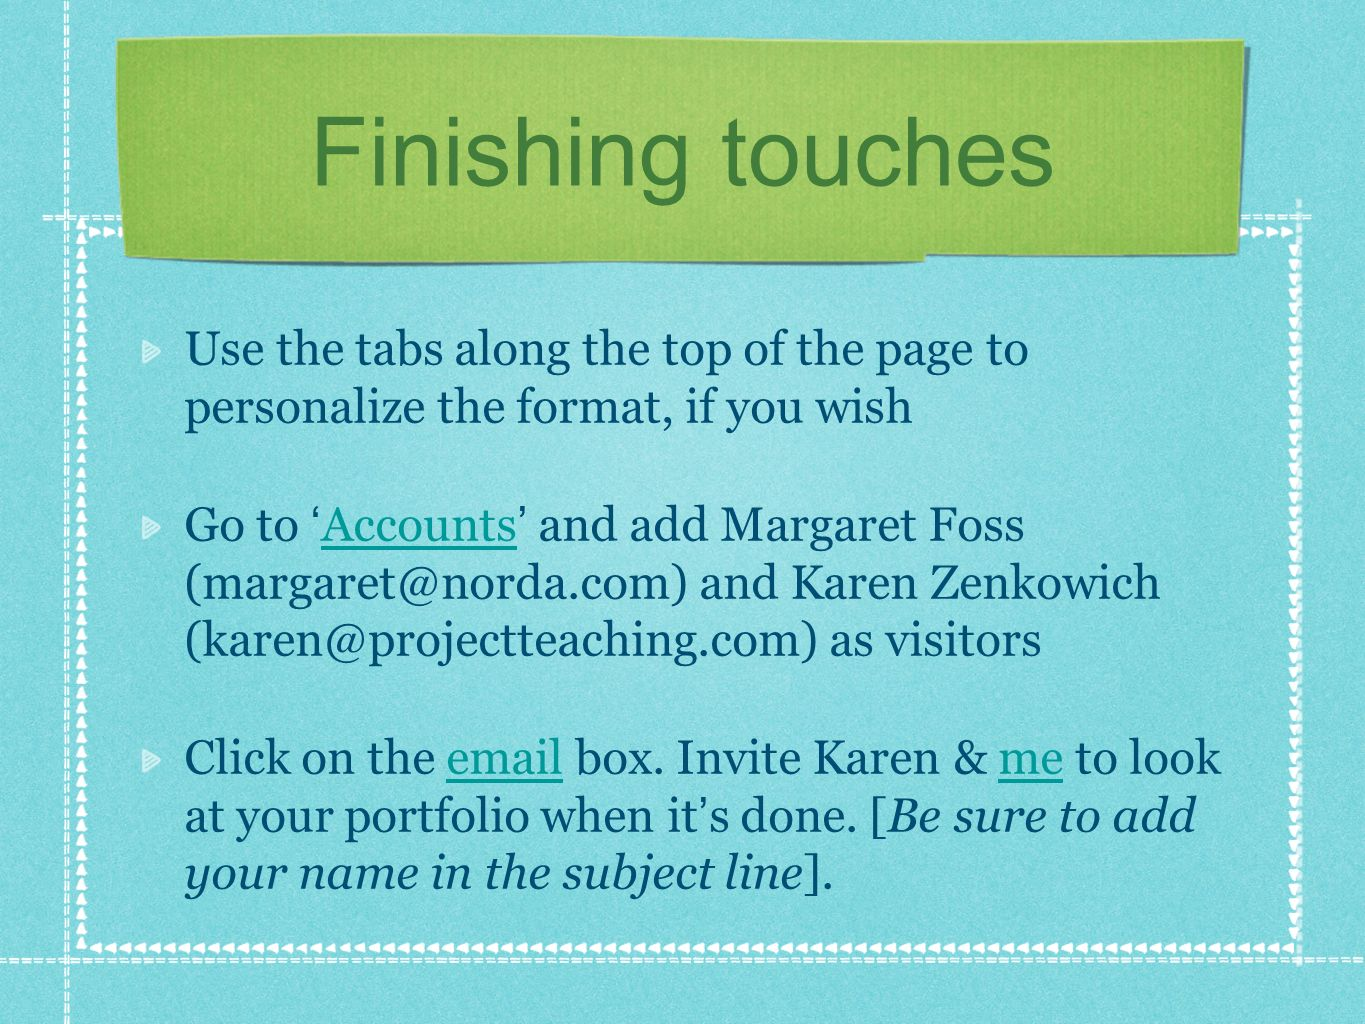 Finishing touches Use the tabs along the top of the page to personalize the format, if you wish Go to Accounts and add Margaret Foss (margaret@norda.com) and Karen Zenkowich (karen@projectteaching.com) as visitors Accounts Click on the email box.